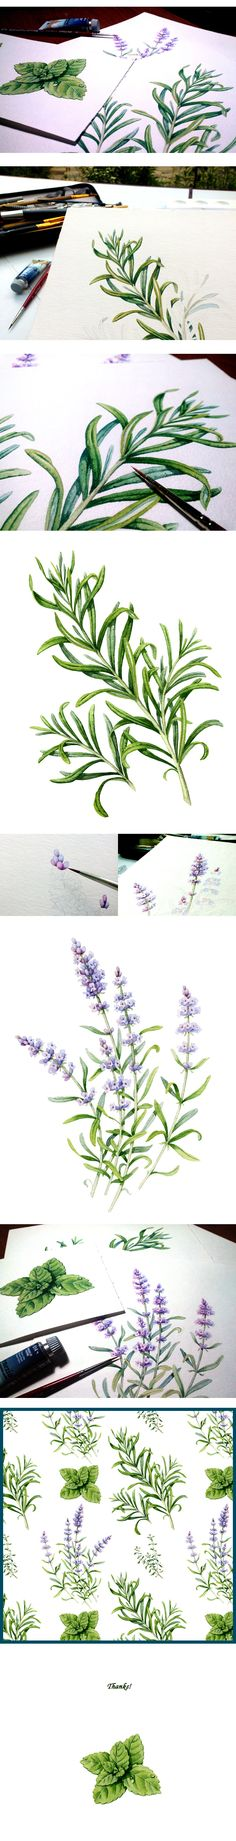 Herbs on Behance by Marin Lvova • watercolour • illustration • botany • aquarelle • mint • rosemary • lavender • thyme